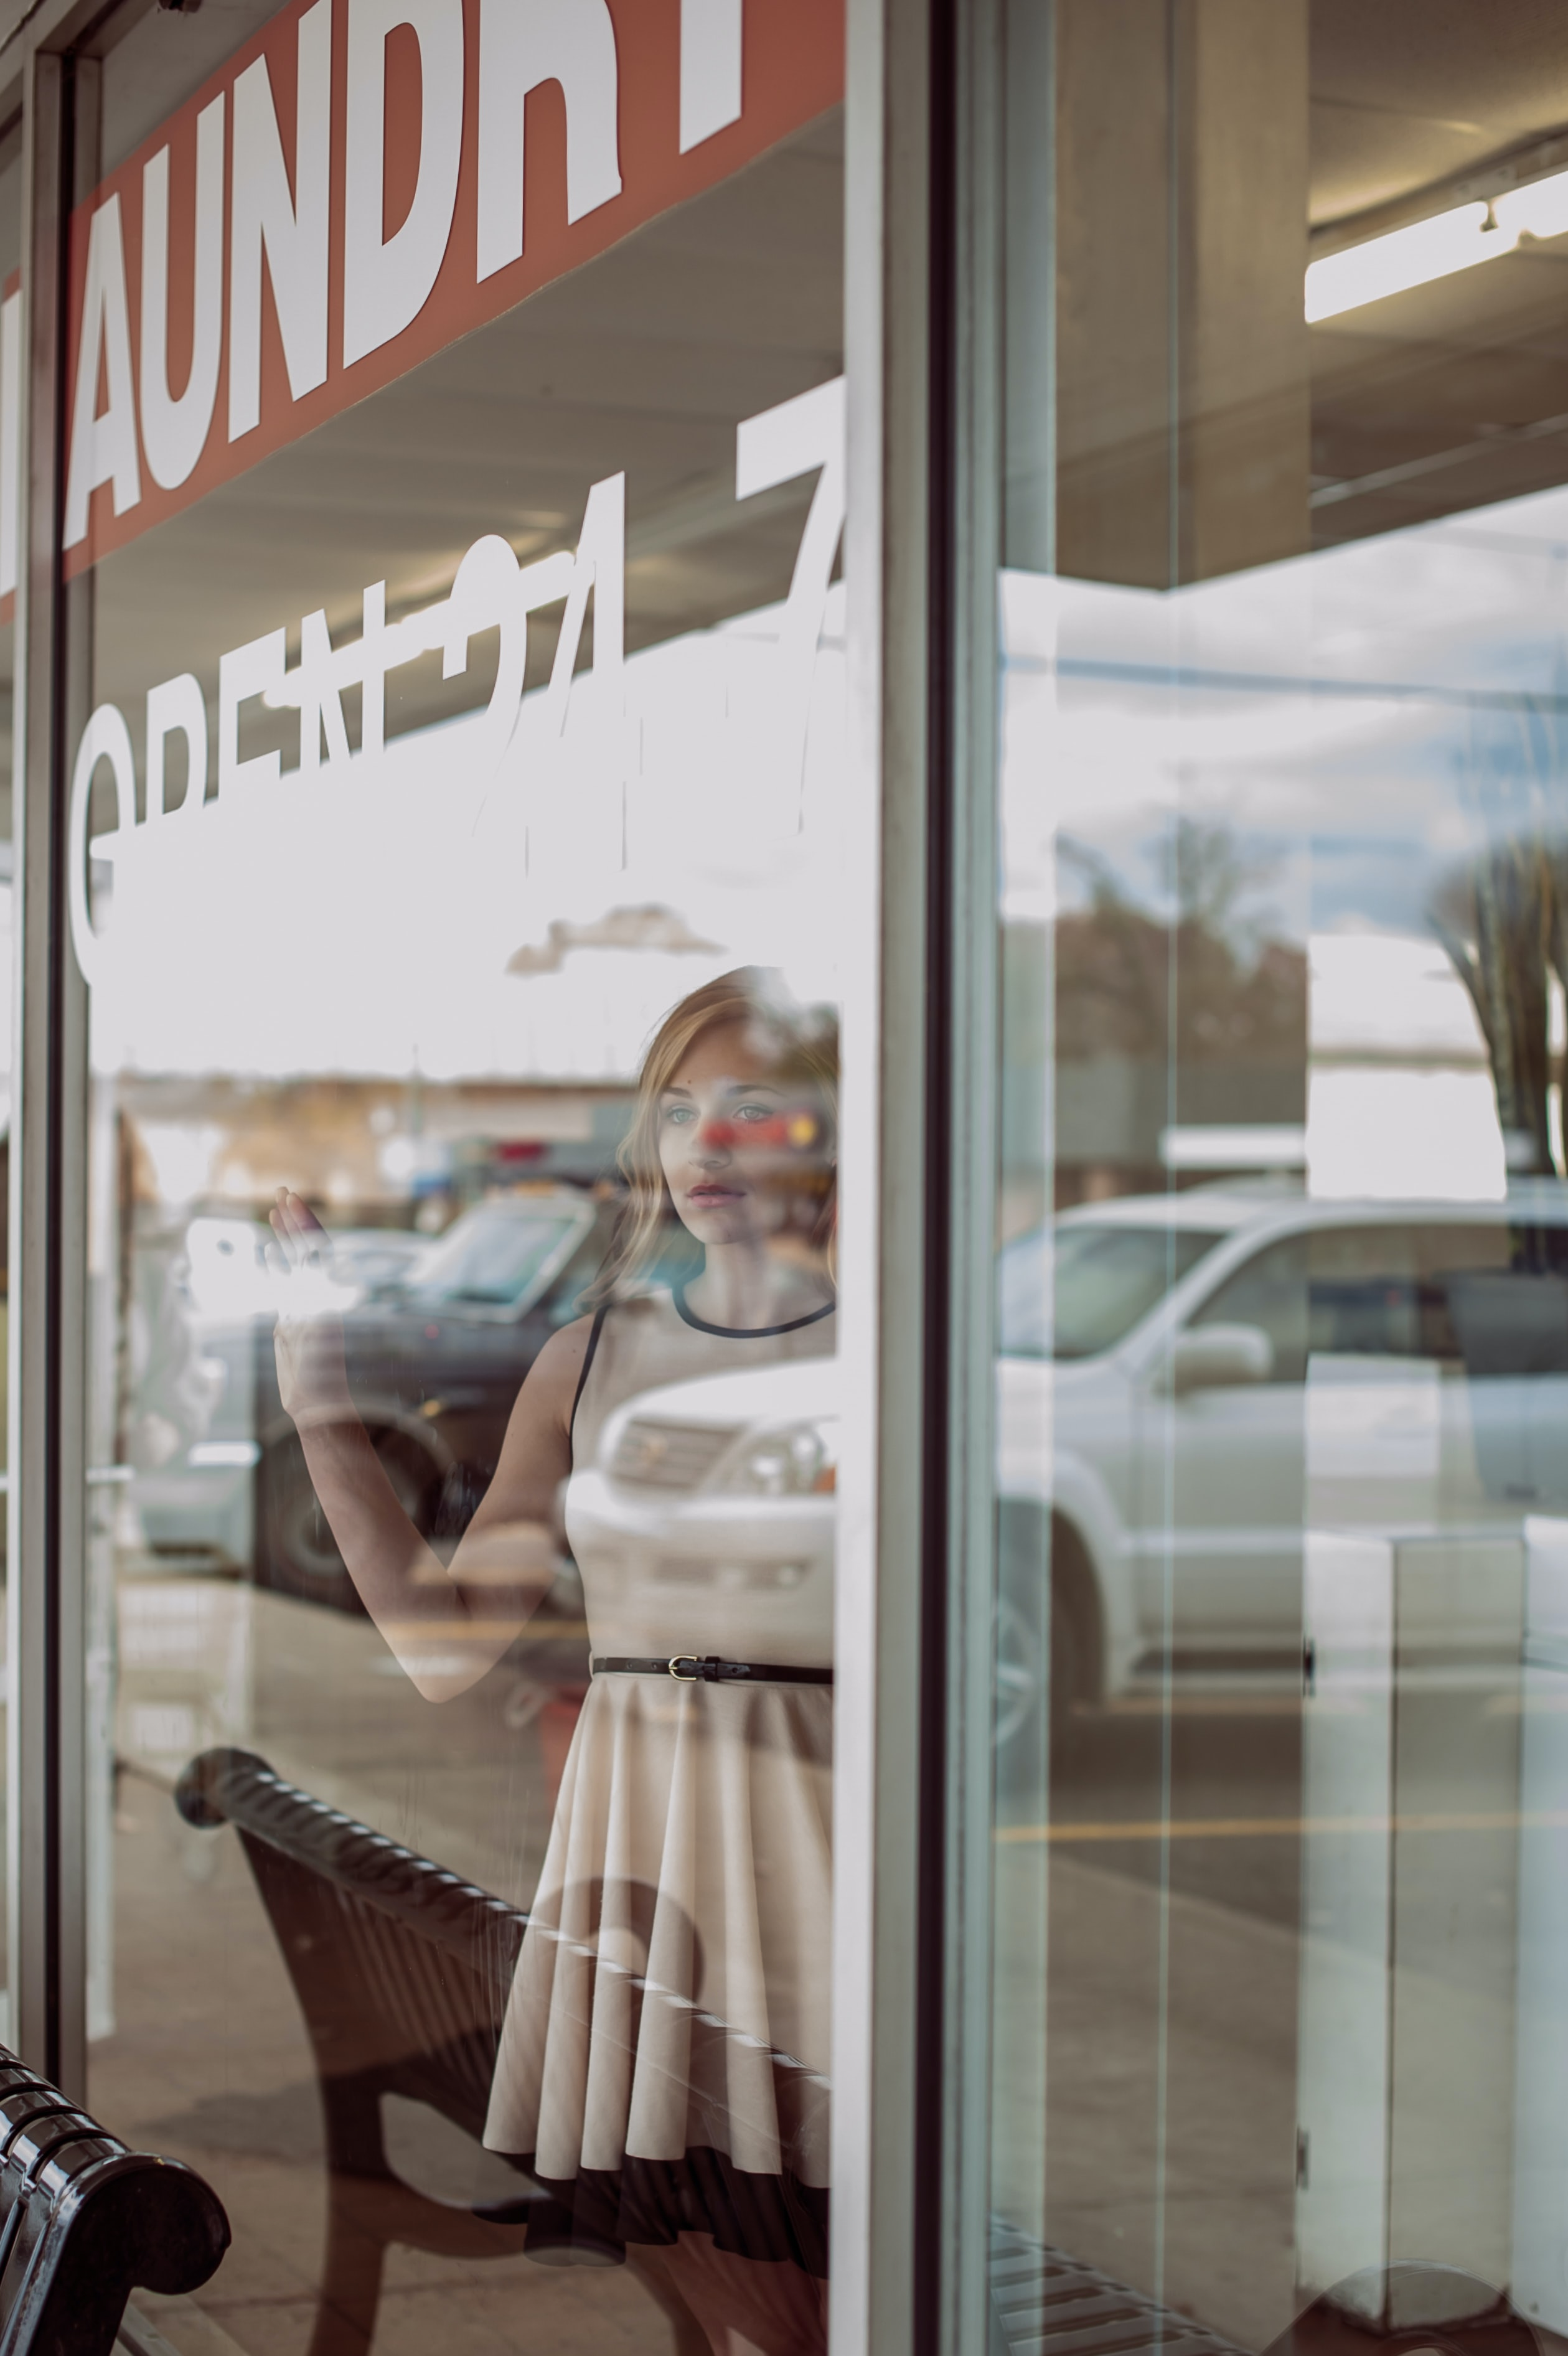 A woman in a white dress is looking out the window of a laundromat.